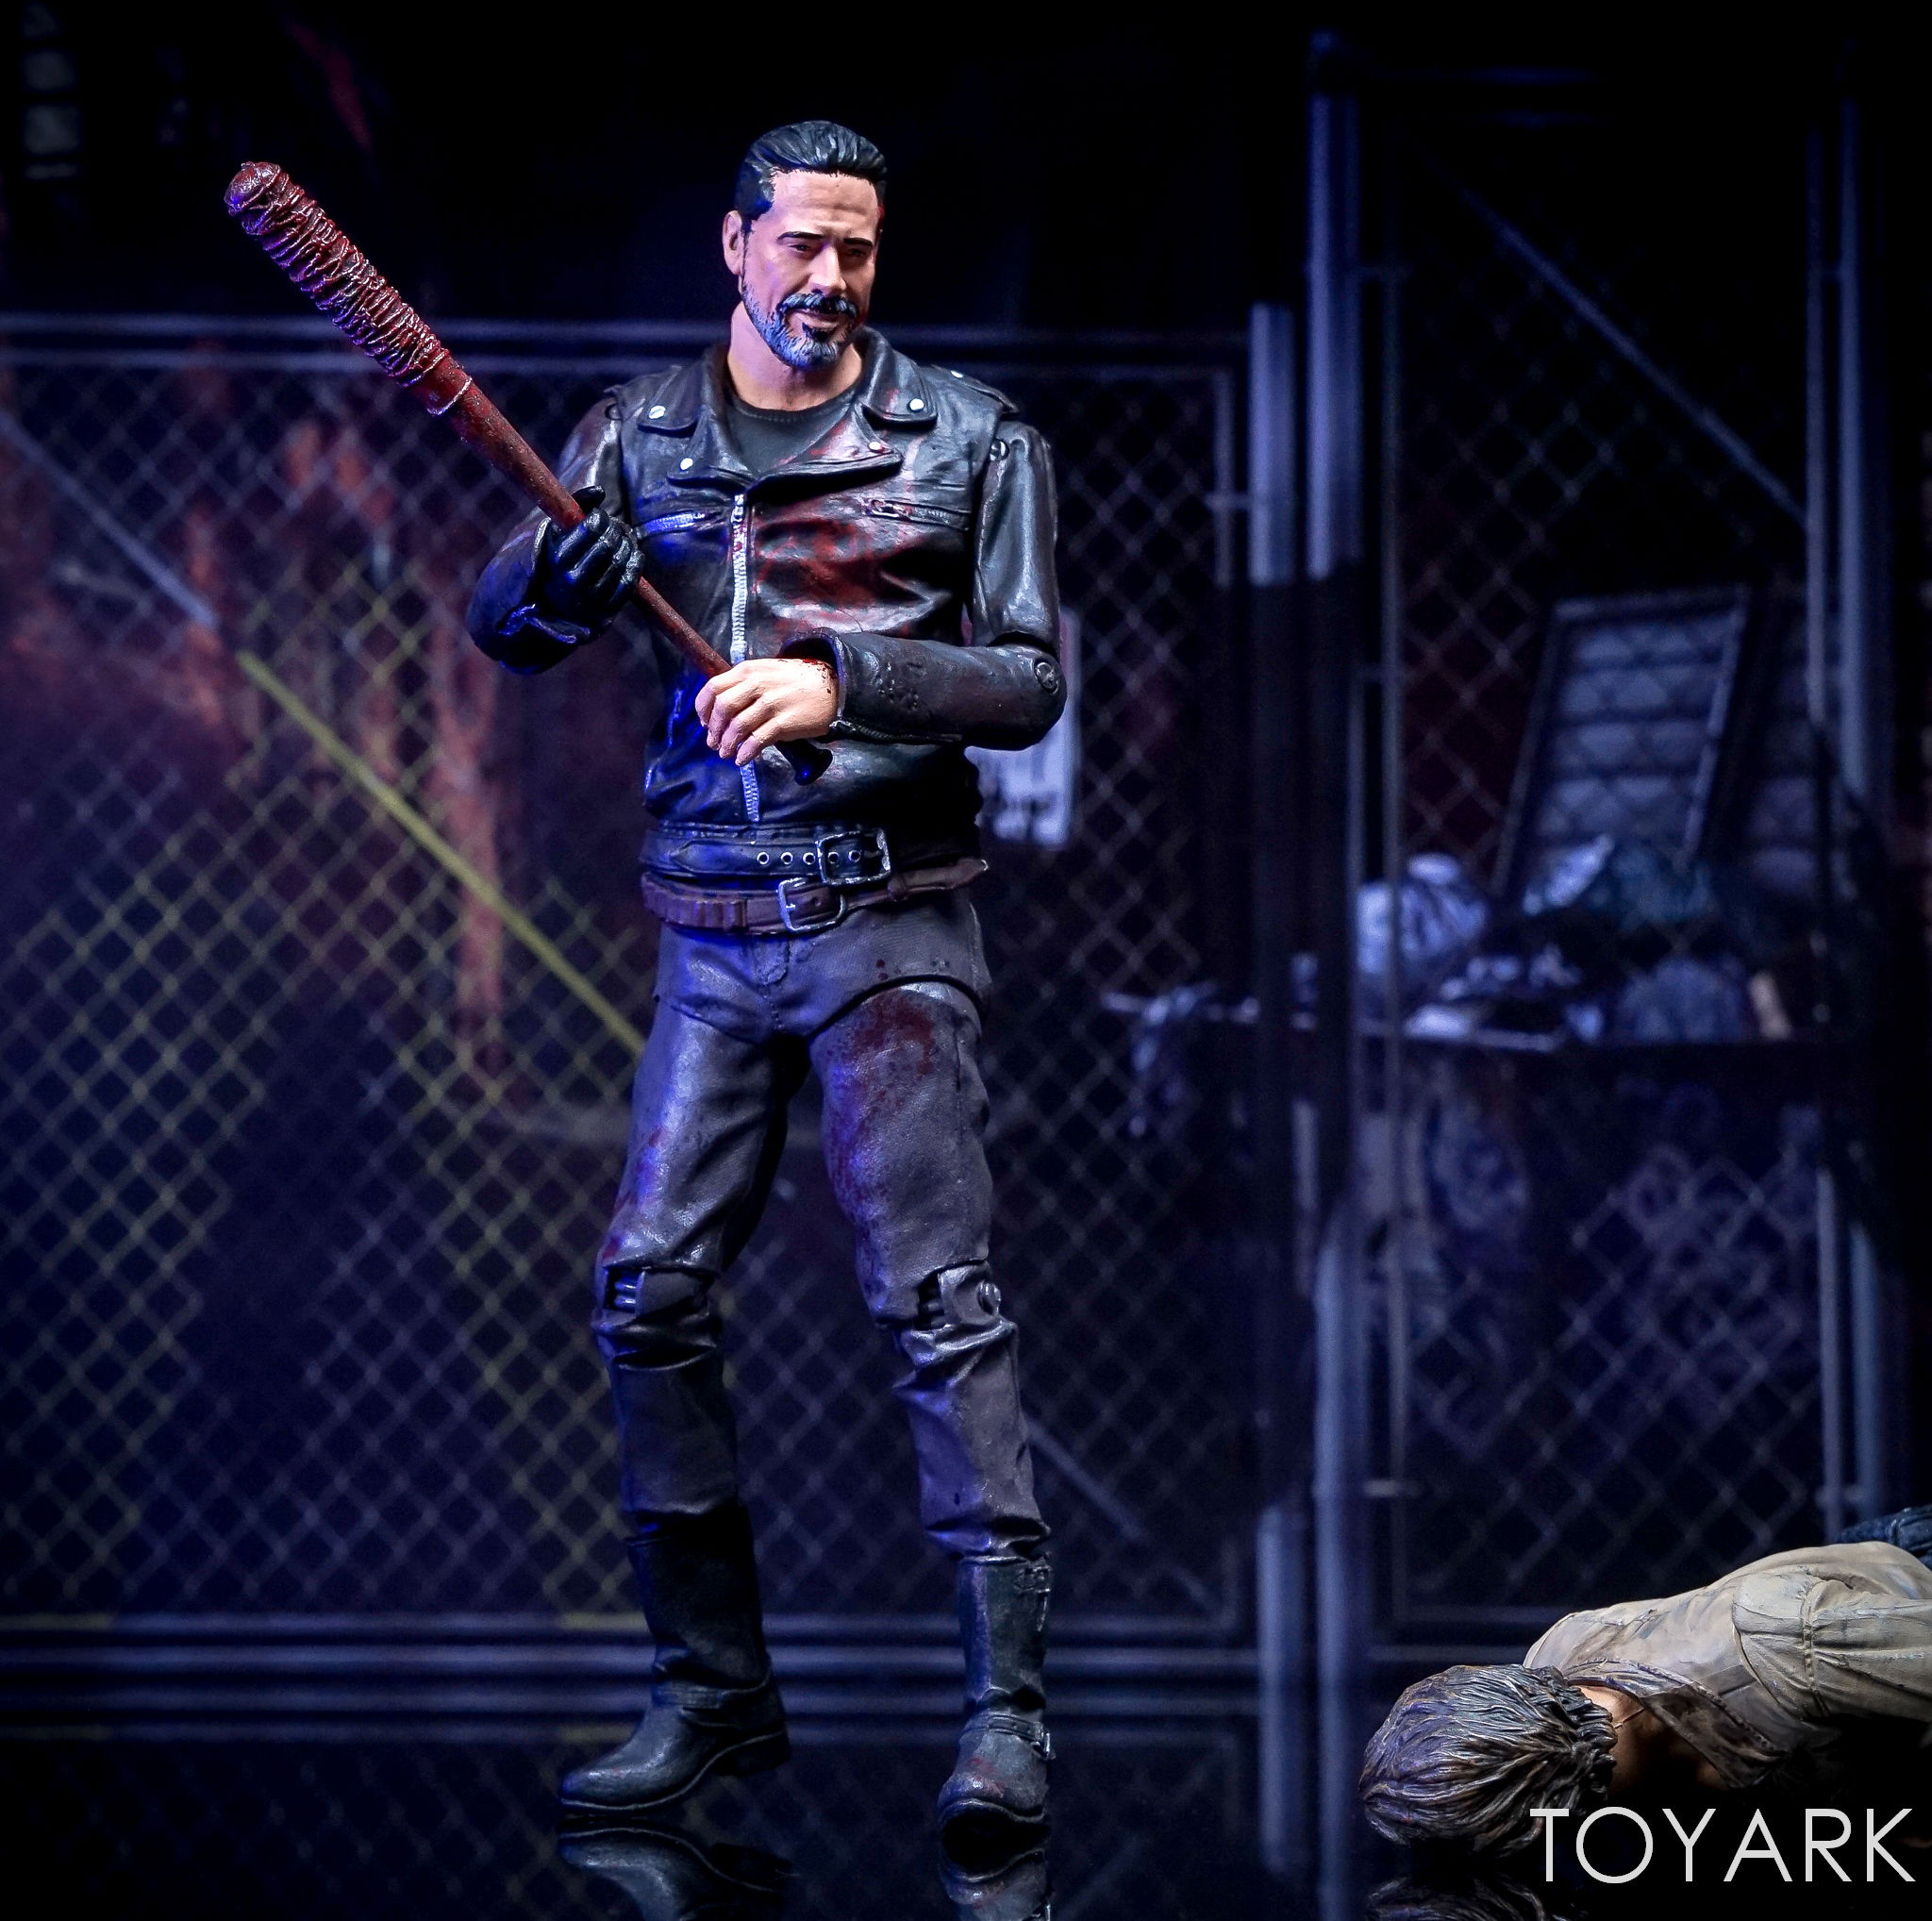 http://news.toyark.com/wp-content/uploads/sites/4/2017/05/McFarlane-Walking-Dead-Negan-041.jpg